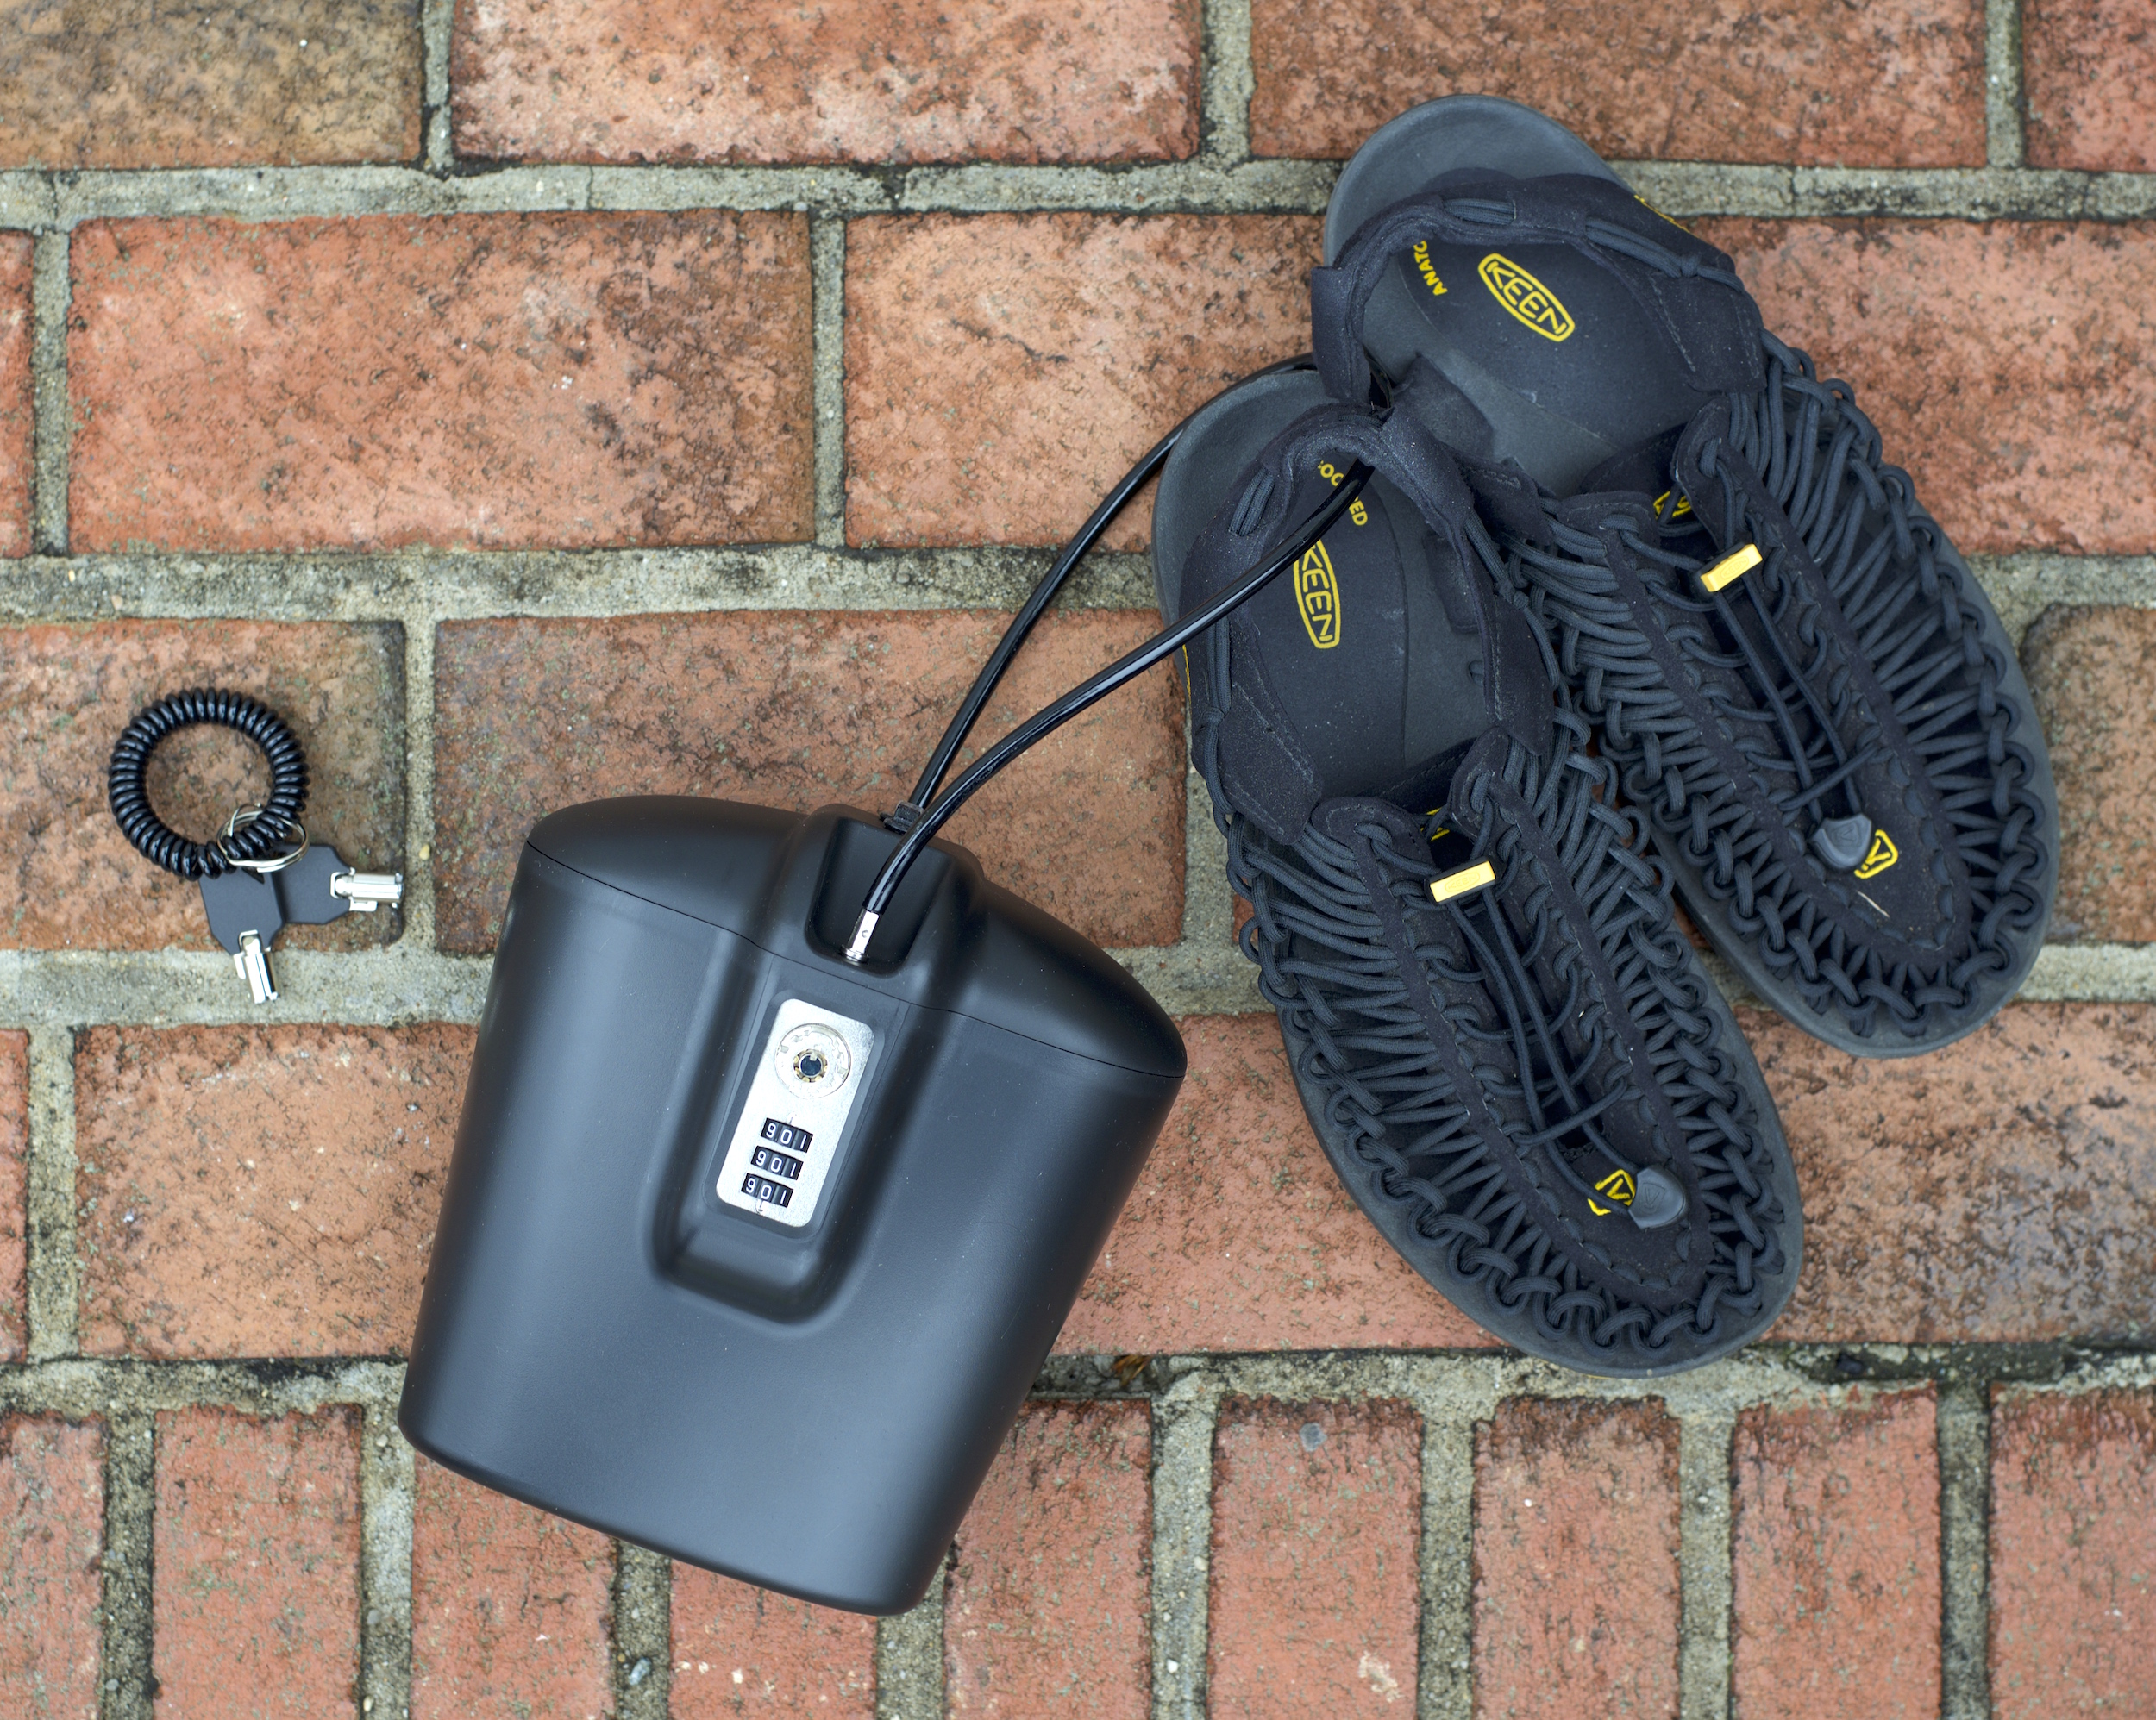 You can attach your sandals or flip flops to the SAFEGO